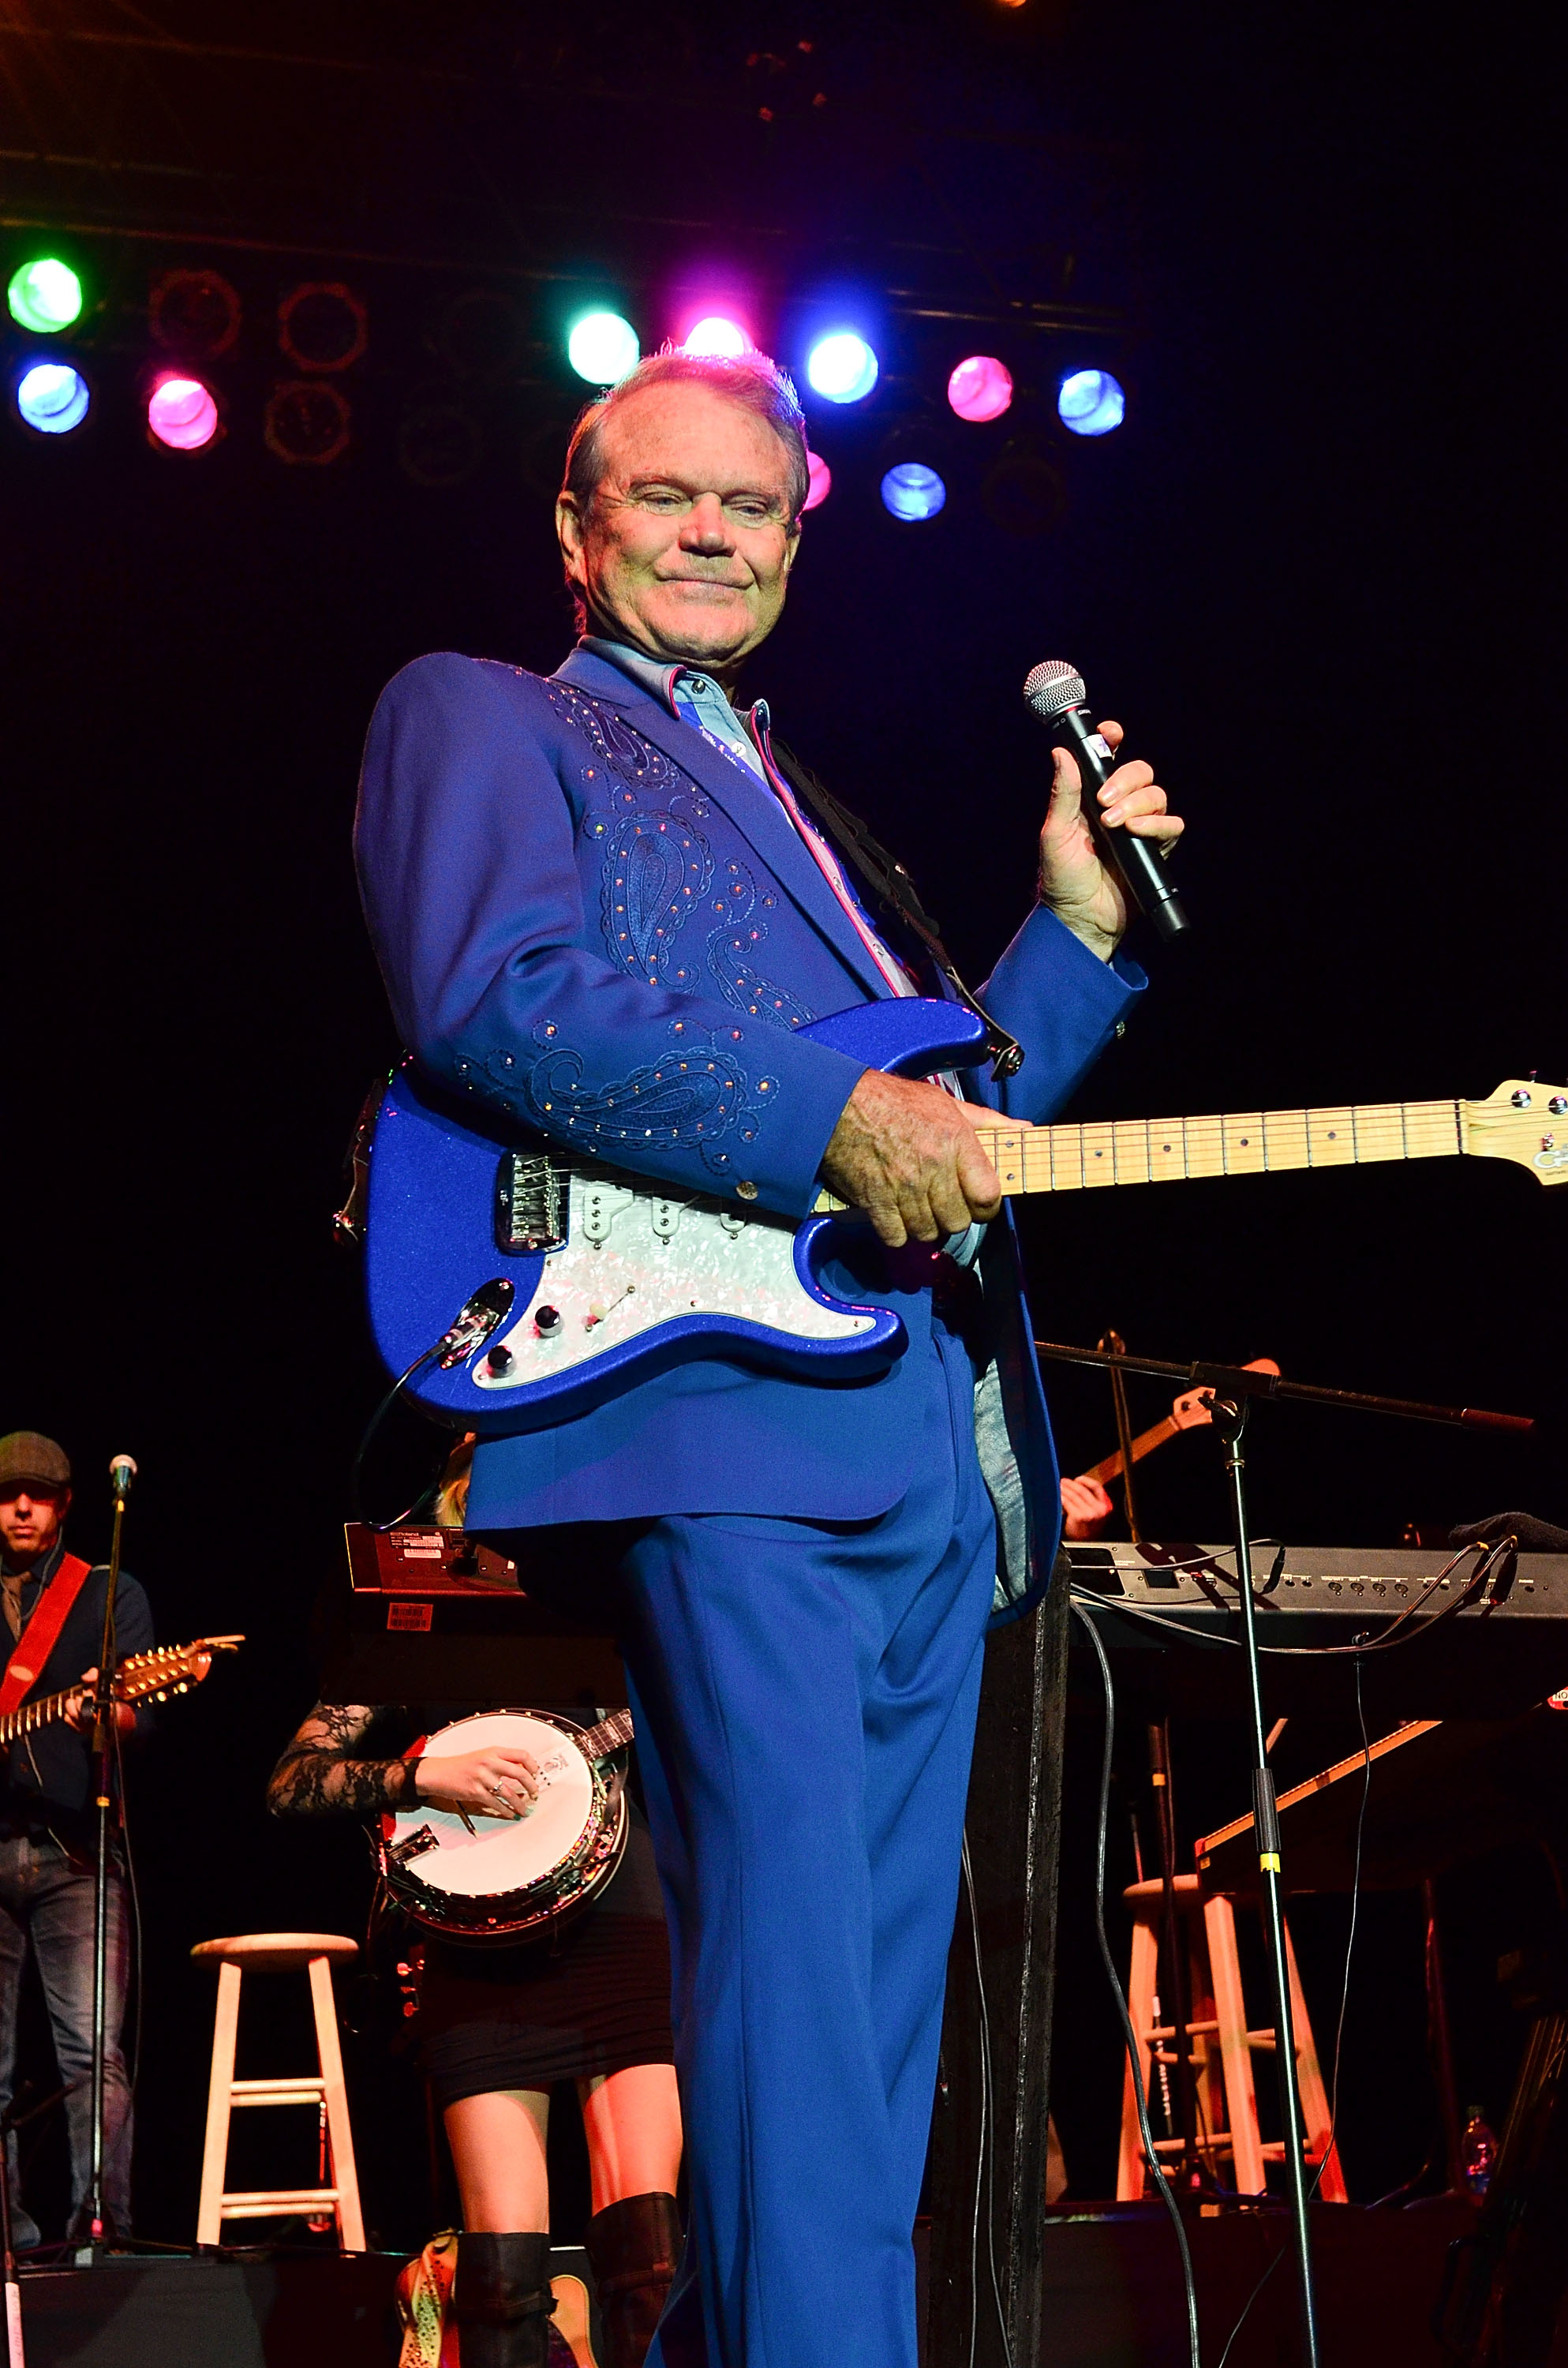 Glen Campbell: Three of Late Singer's Children Excluded From Will